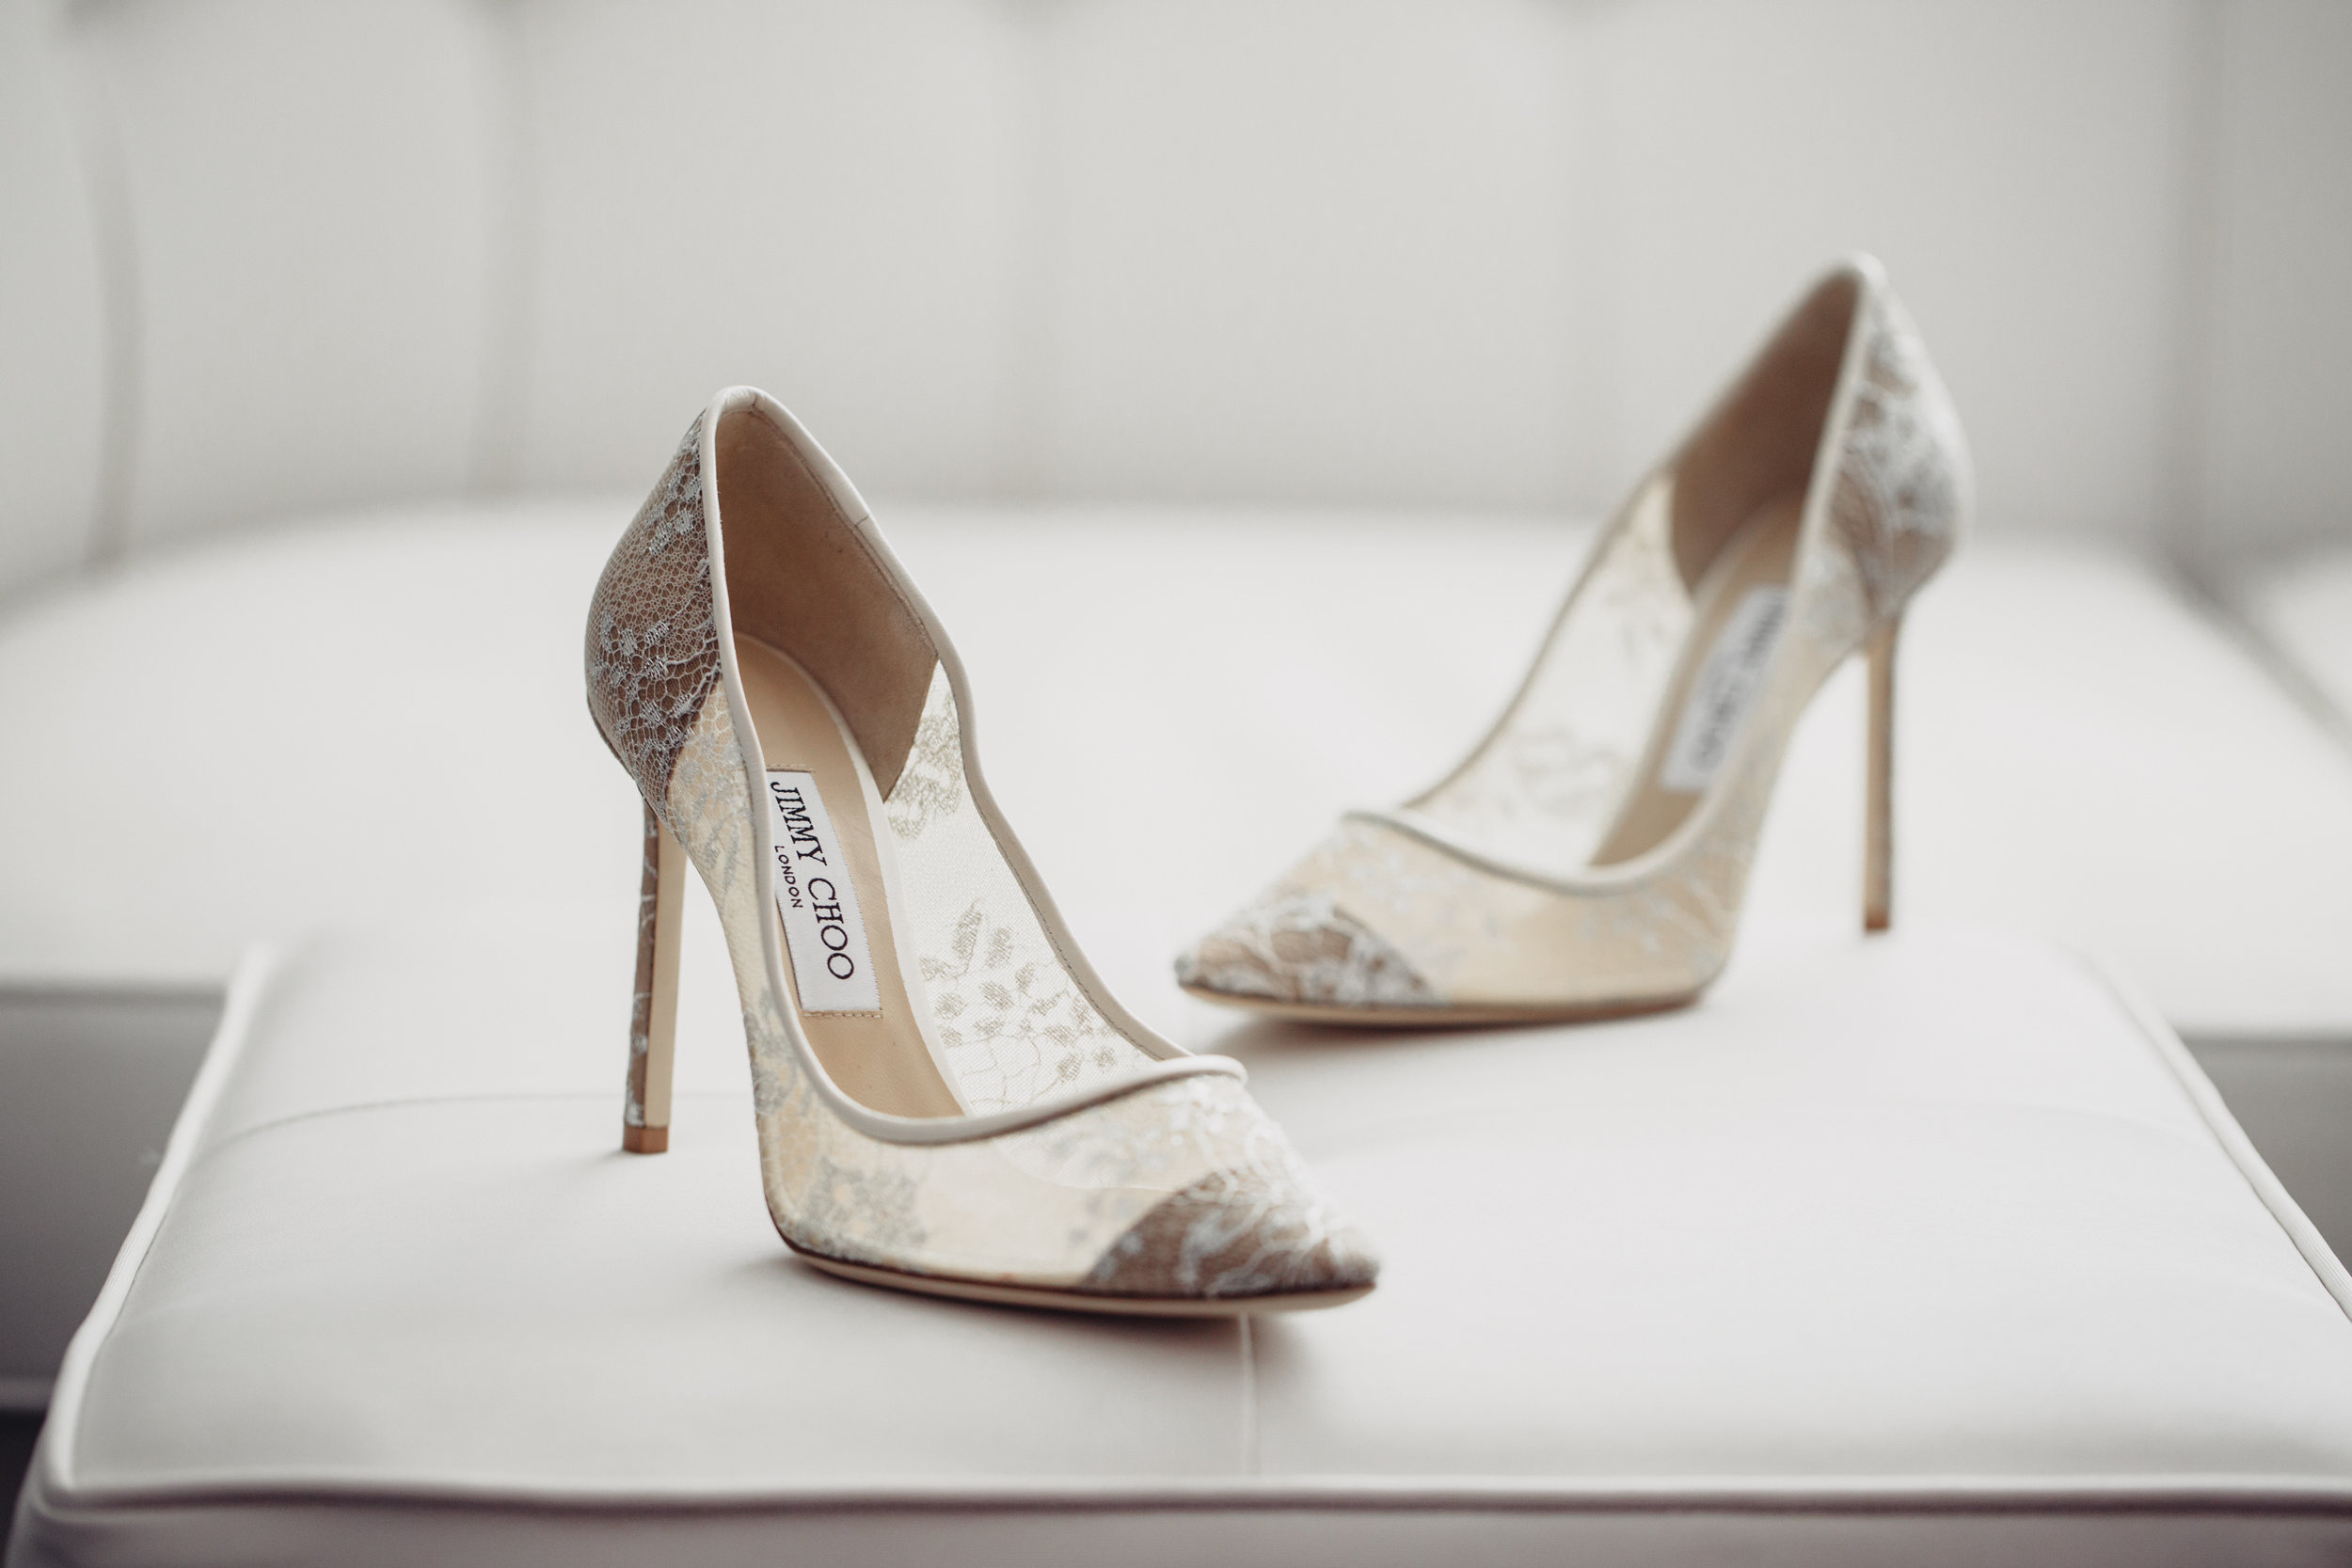 Luxury Destination Wedding Planning and Event Design by  Andrea Eppolito Events  · Photos by  Stephen Salazar  · Shoes by  Jimmy Choo